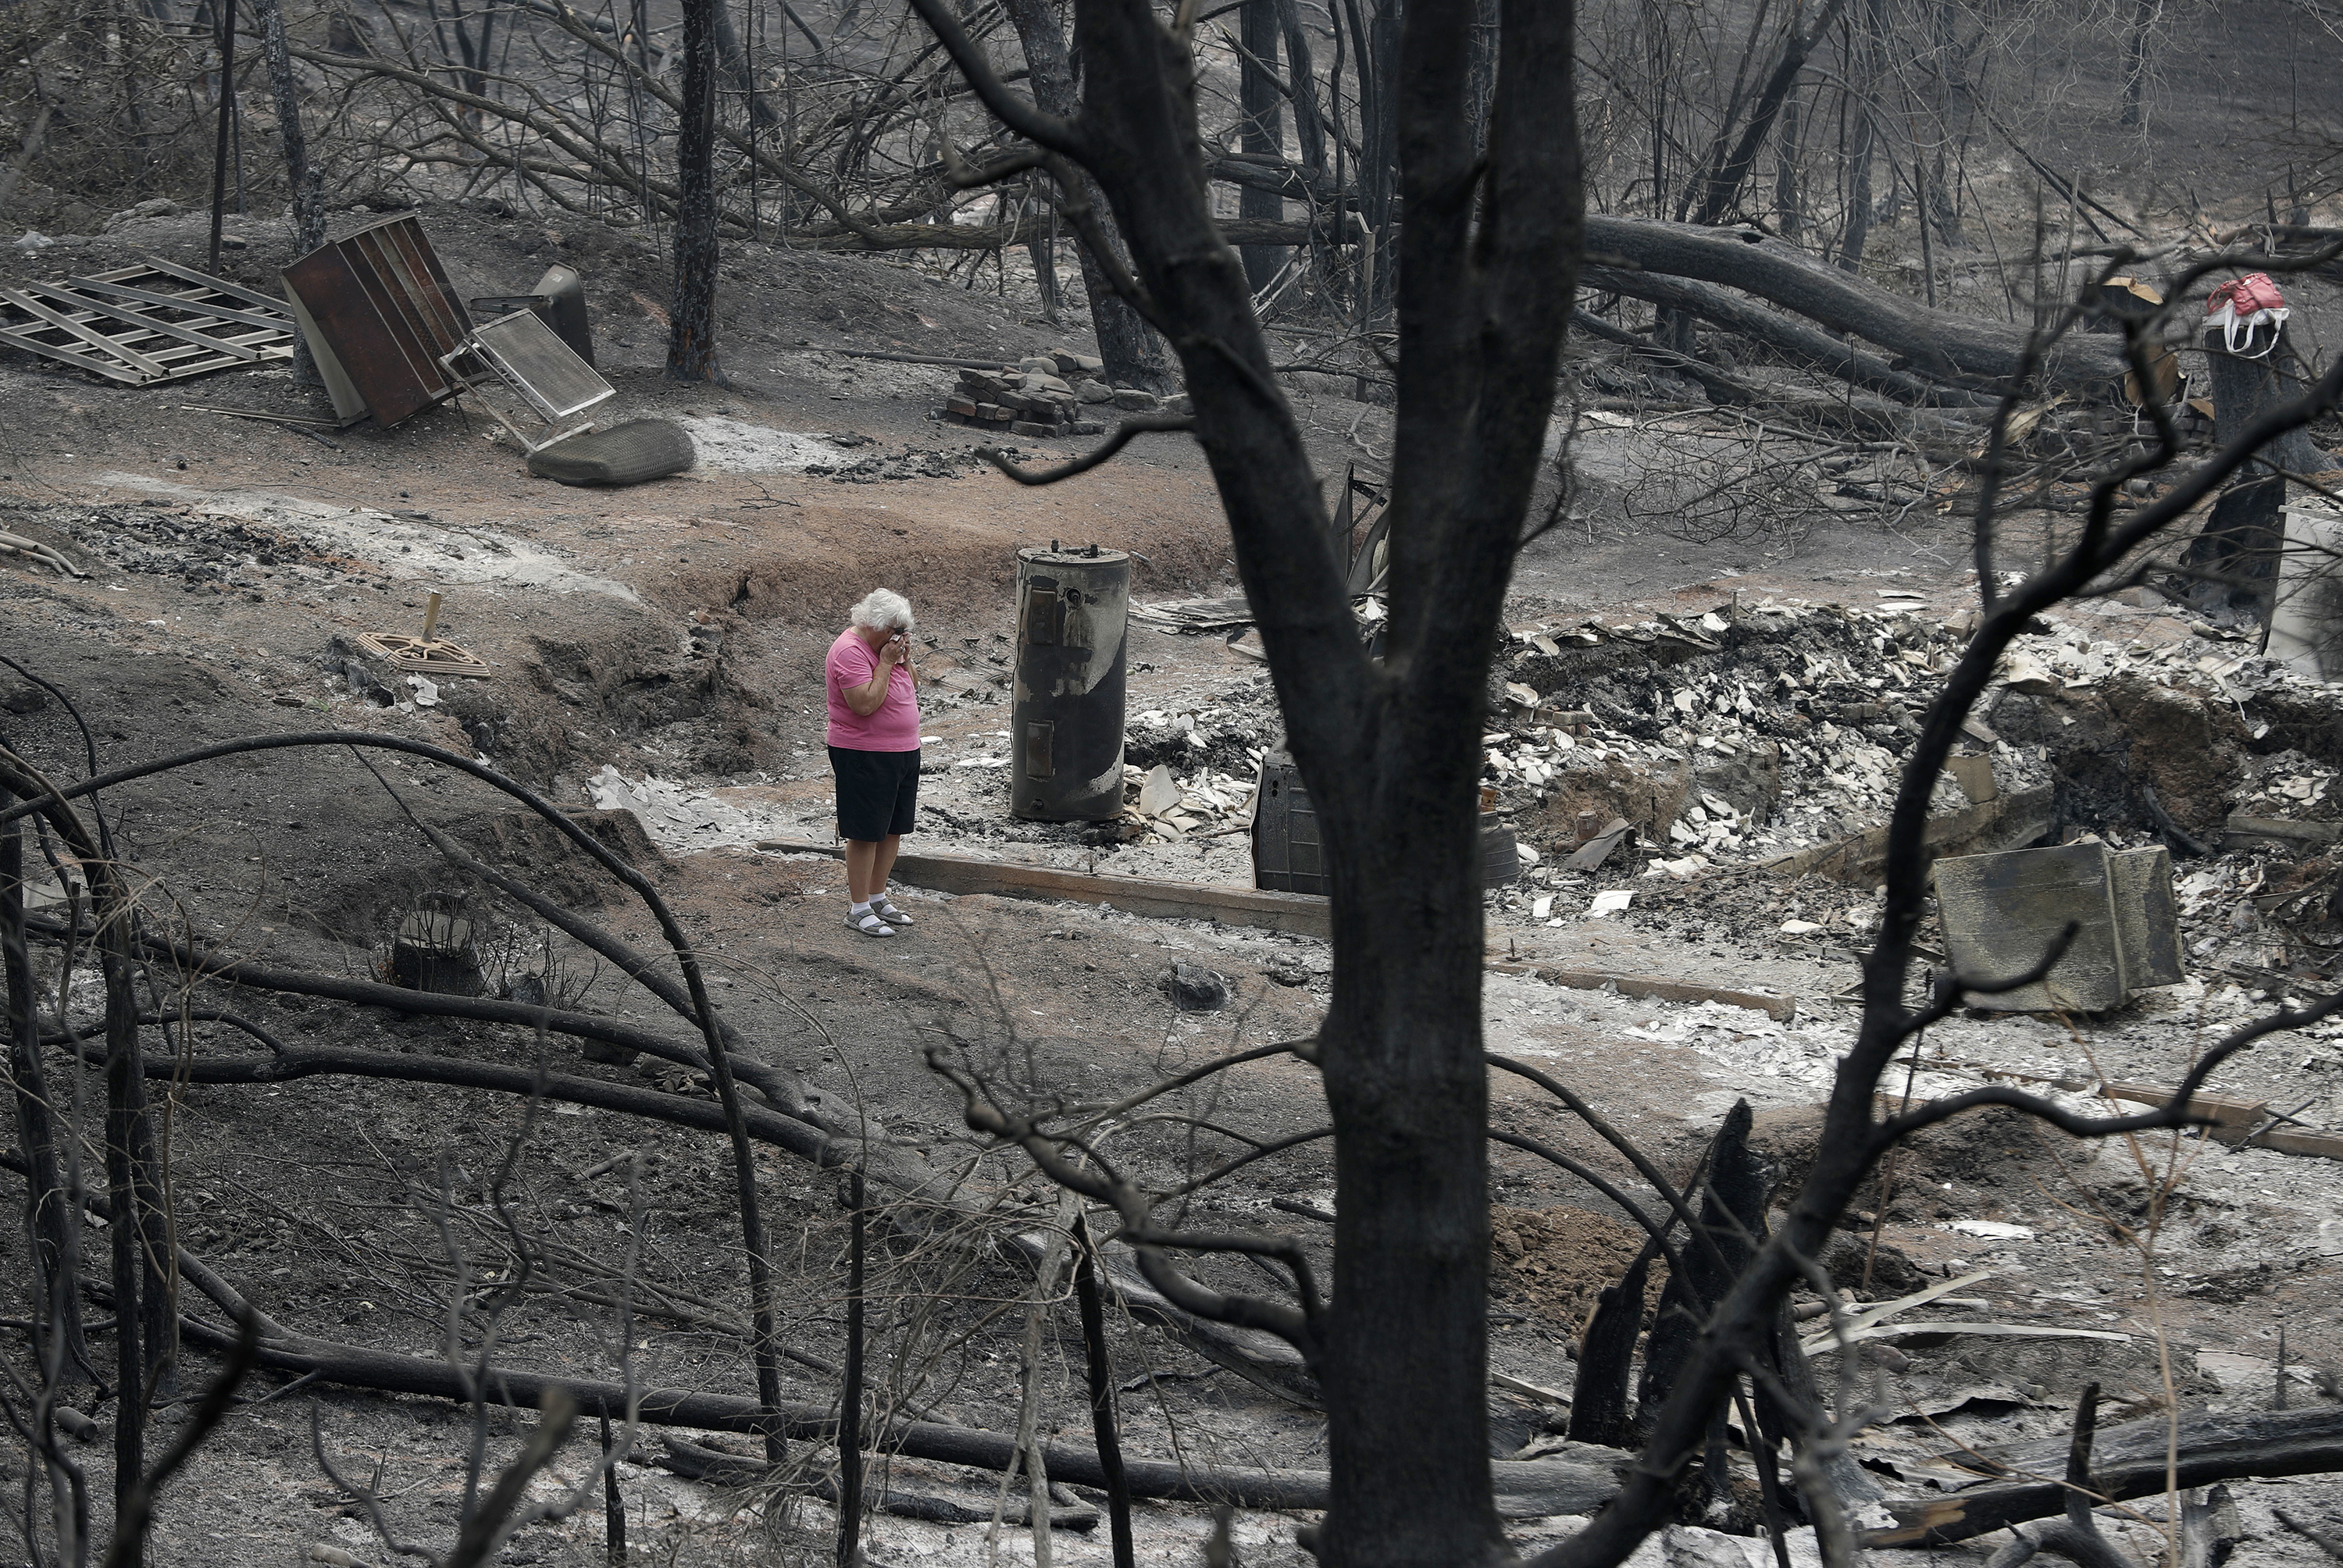 <div class='meta'><div class='origin-logo' data-origin='none'></div><span class='caption-text' data-credit='John Locher/AP Photo'>Loretta Root wipes her eyes while visiting the remains of her home in the Keswick area burned in the Carr Fire, Aug. 9, 2018, in Redding. &#34;It's hard to see this,&#34; Root said.</span></div>